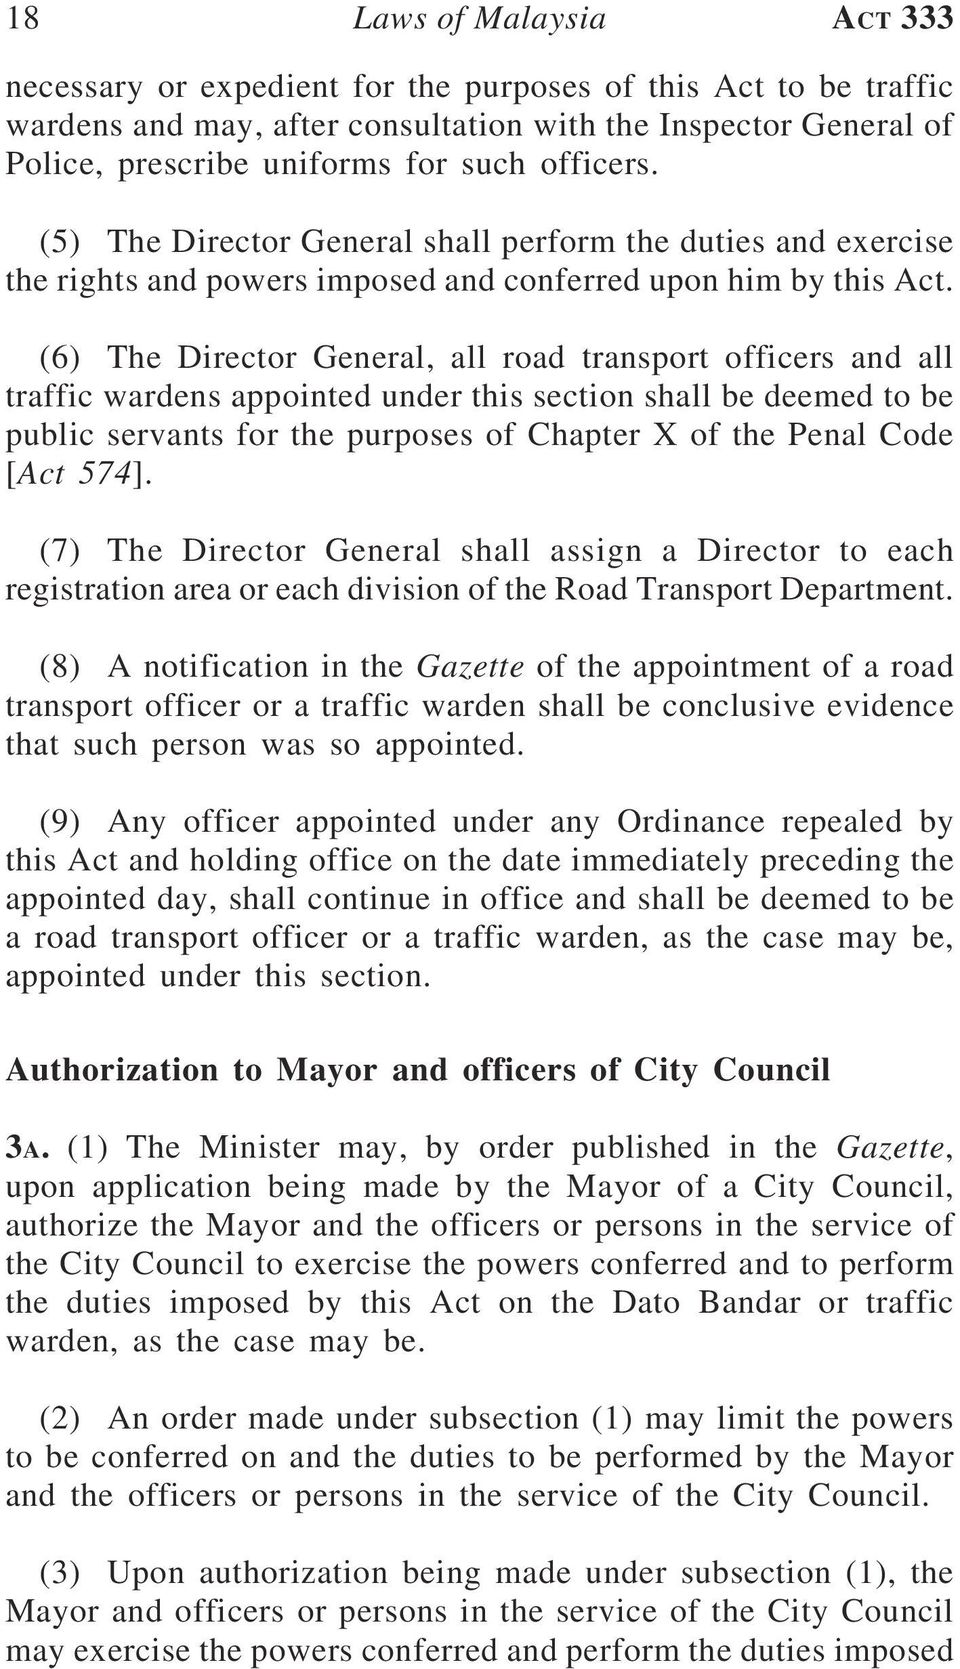 (6) The Director General, all road transport officers and all traffic wardens appointed under this section shall be deemed to be public servants for the purposes of Chapter X of the Penal Code [Act